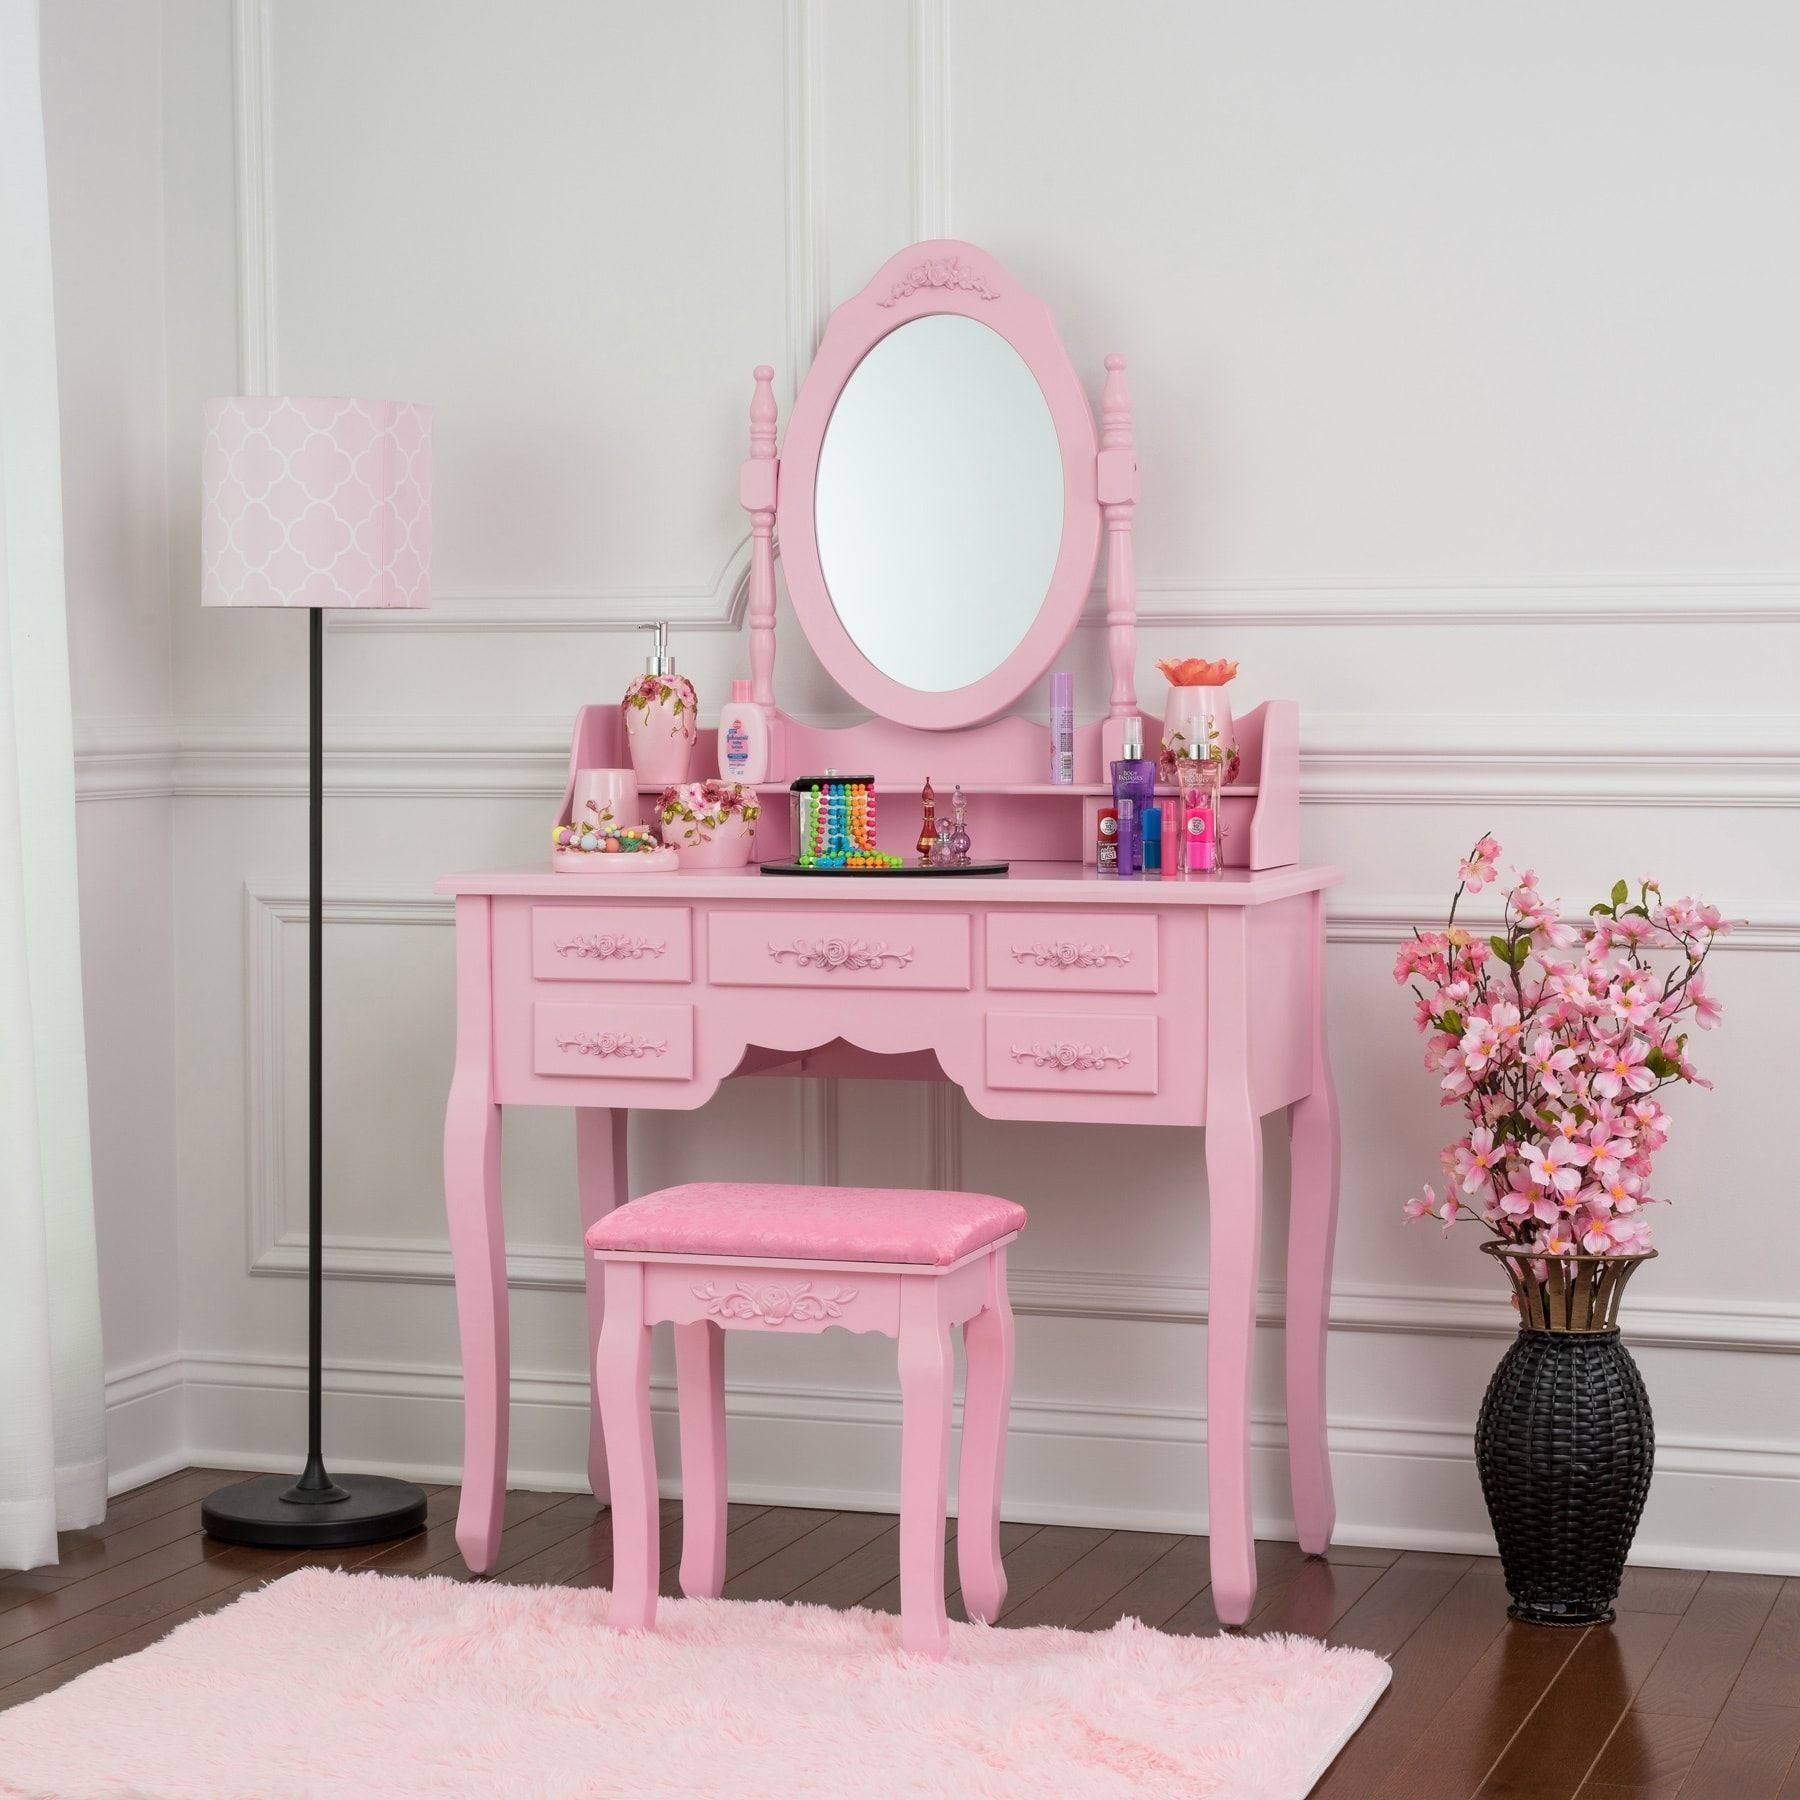 Fineboard vanity set with stool u mirror makeup table with